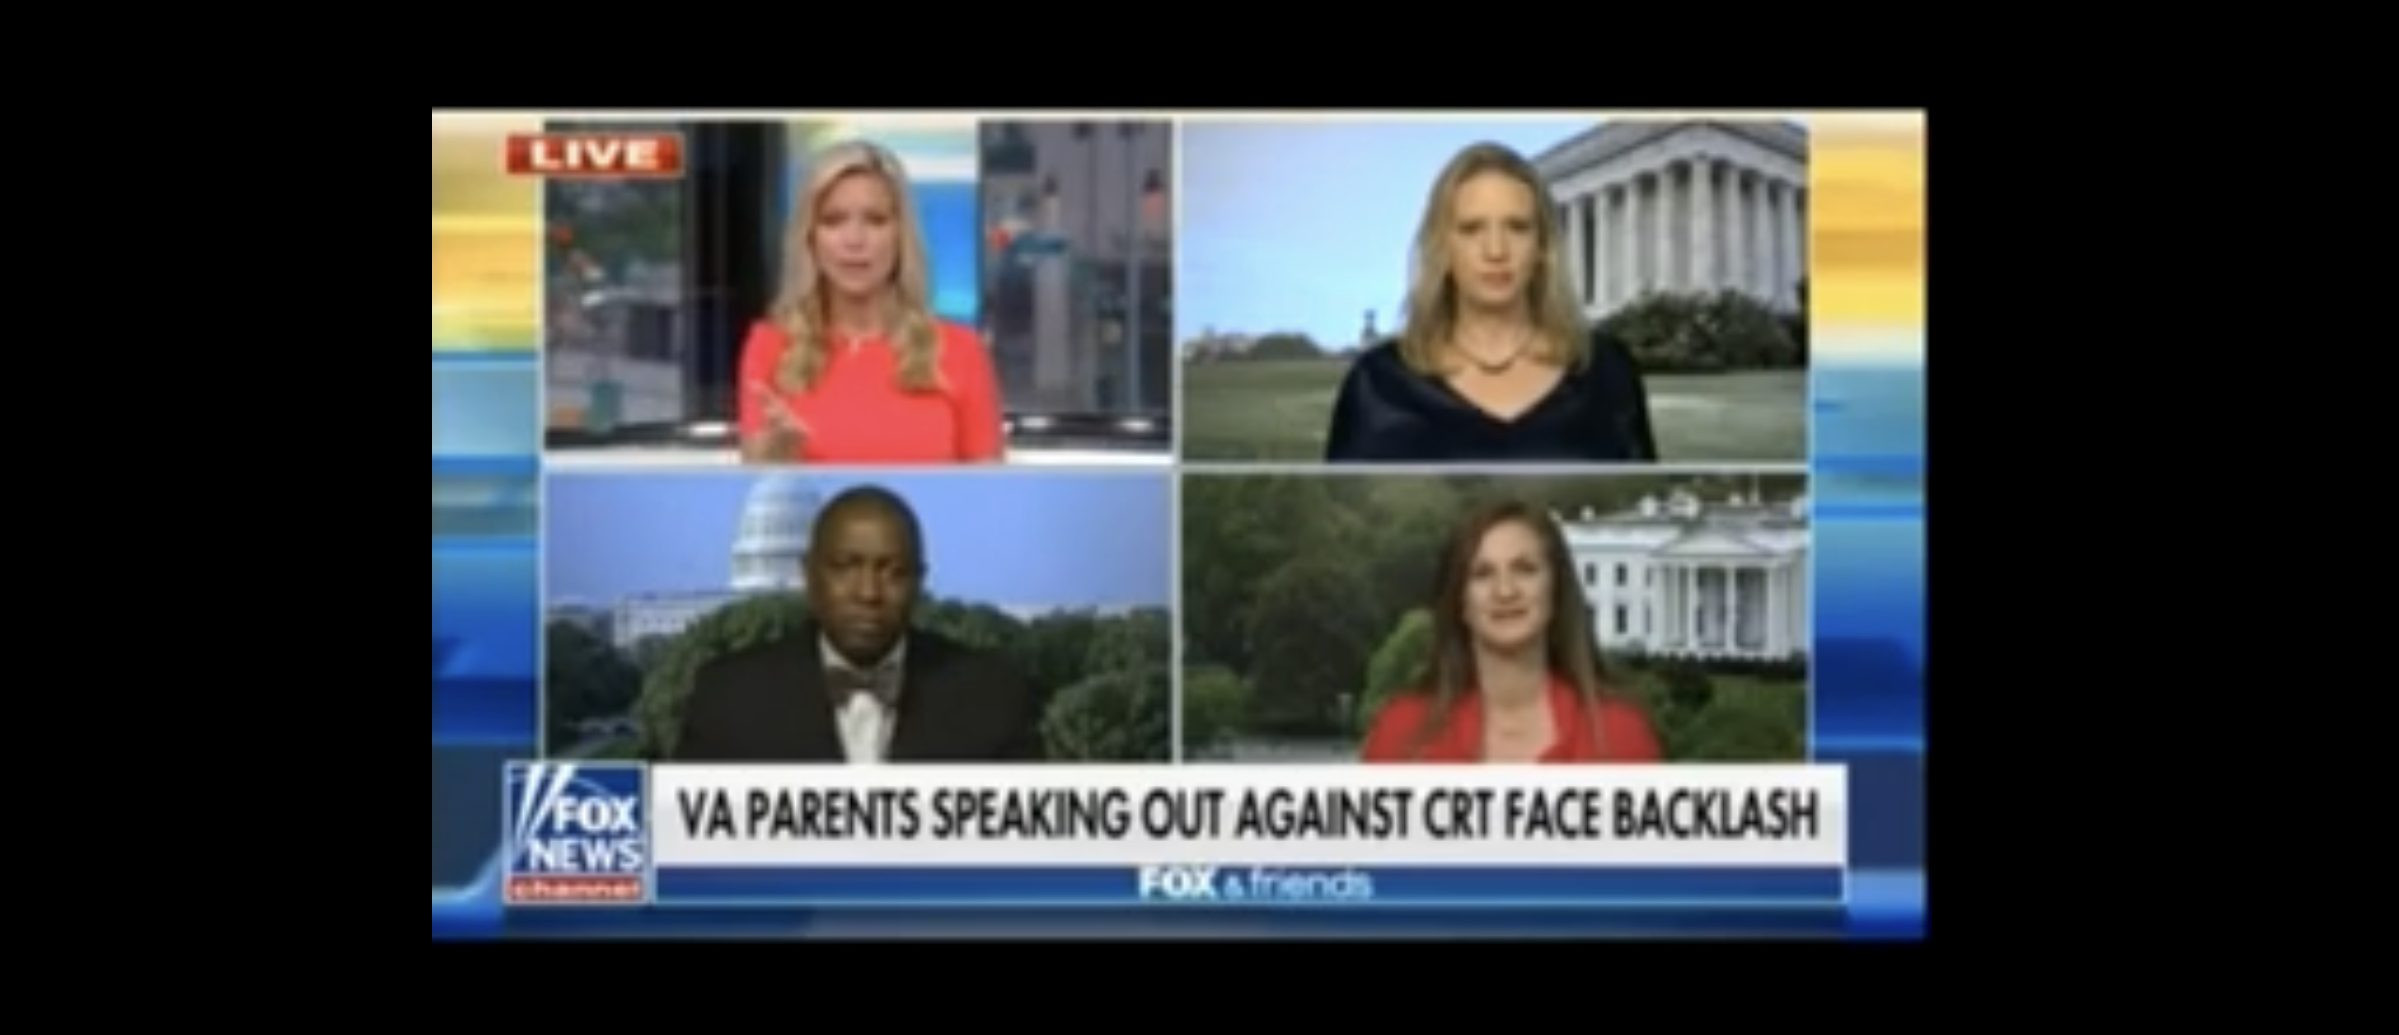 Fox & Friends interviewed Loudoun County parents about the backlash received for criticizing CRT in schools